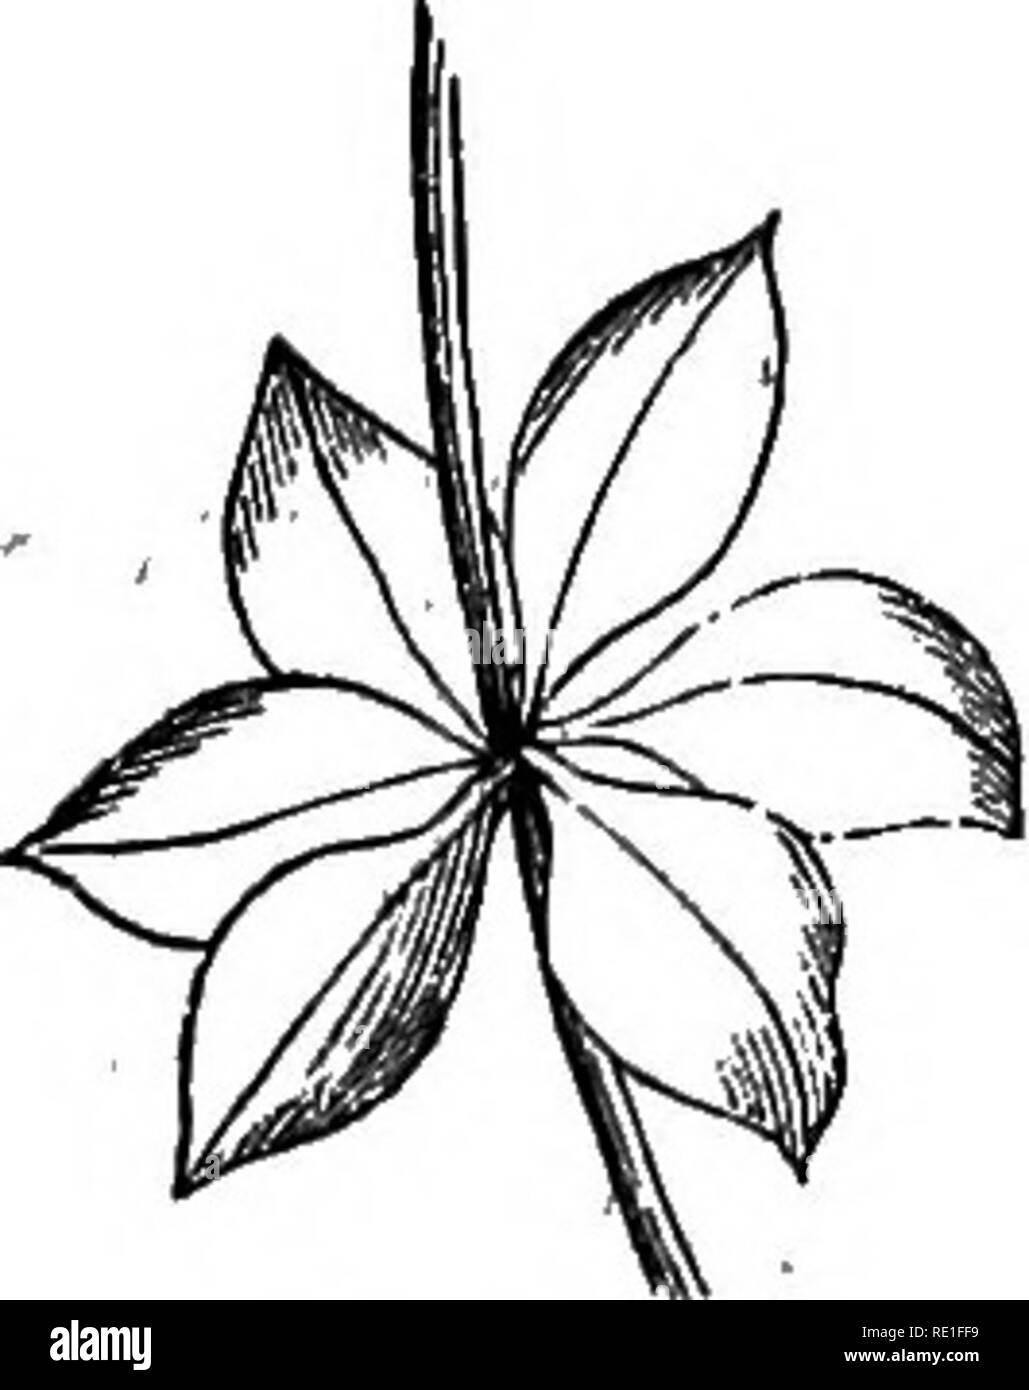 The Elements Of Structural Botany With Special Reference To The Study Of Canadian Plants Plant Physiology Plant Anatomy 108 Elements 01 S L Eucl Ubal Botany However They Are Extremely Thick And Succulent